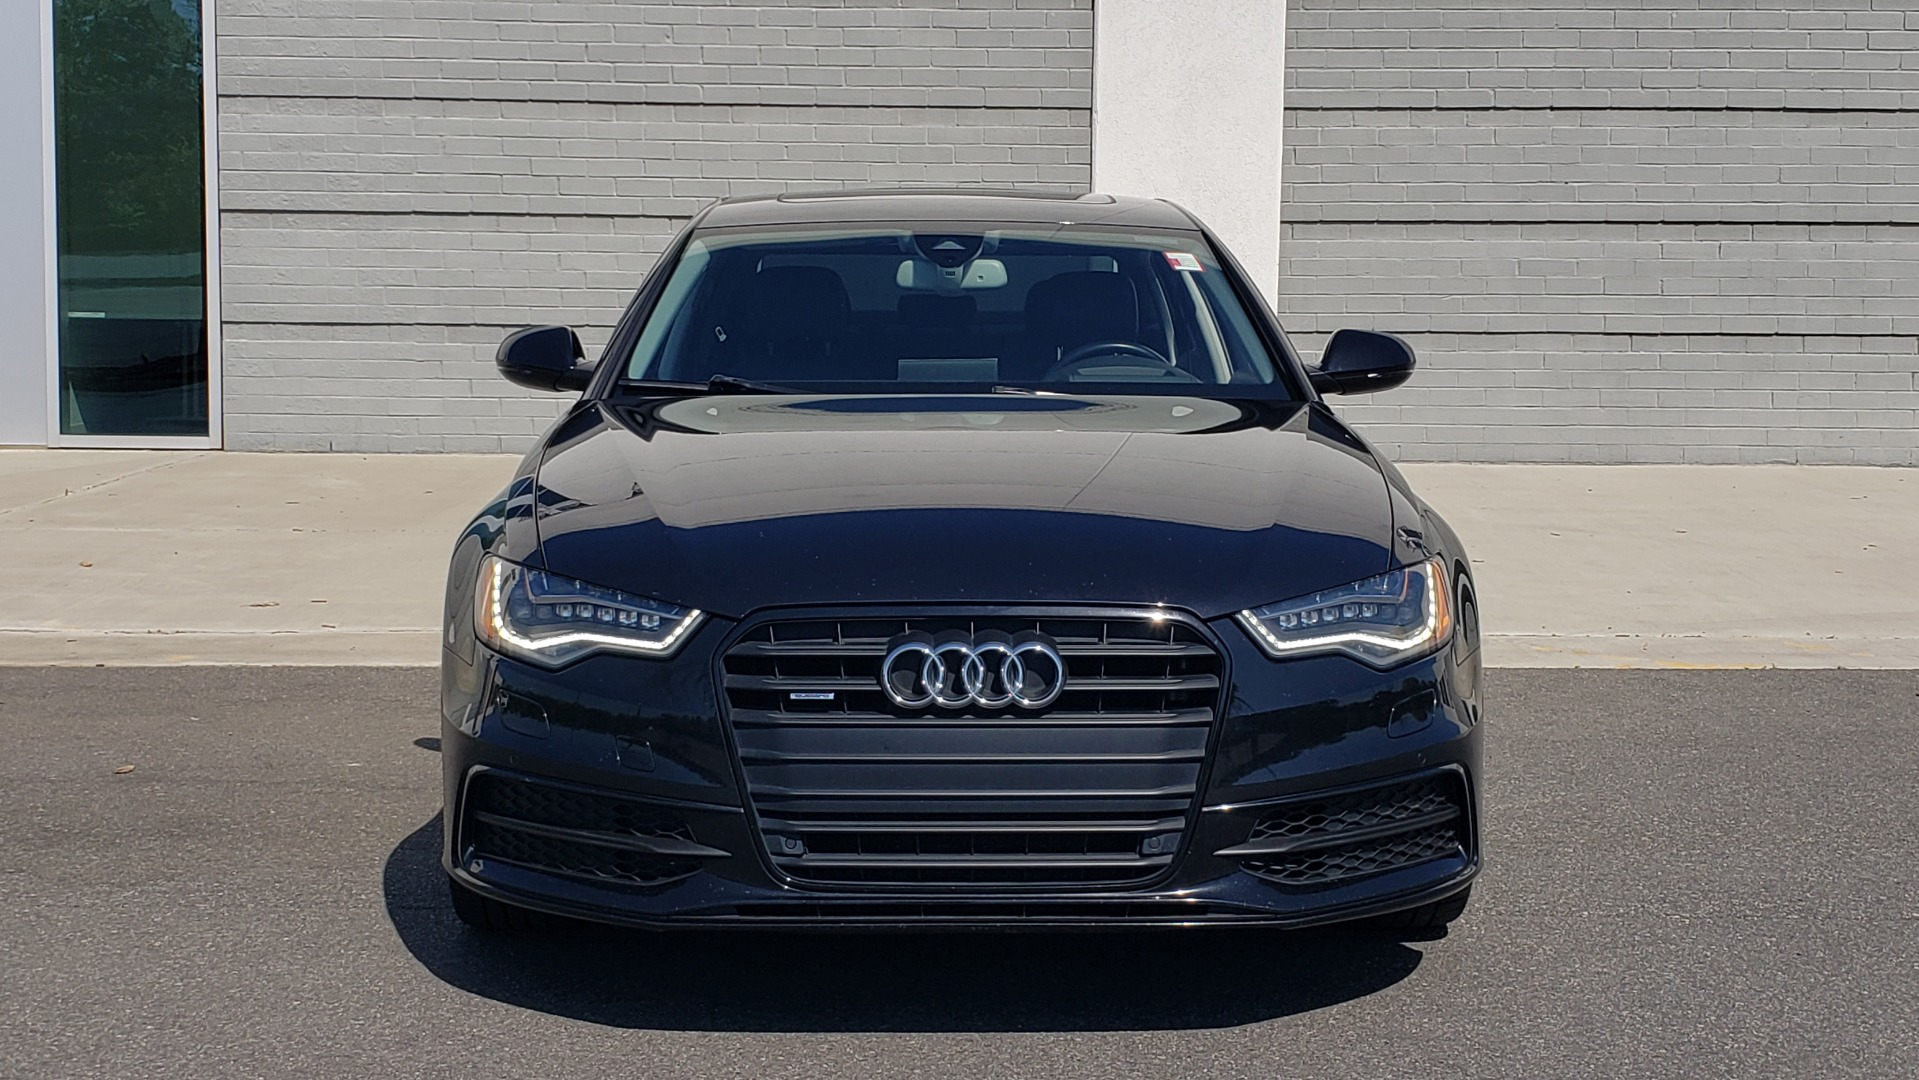 Used 2015 Audi A6 3.0T PRESTIGE / BLACK OPTIC / CLD WTHR / BOSE / HUD / SUNROOF for sale Sold at Formula Imports in Charlotte NC 28227 22